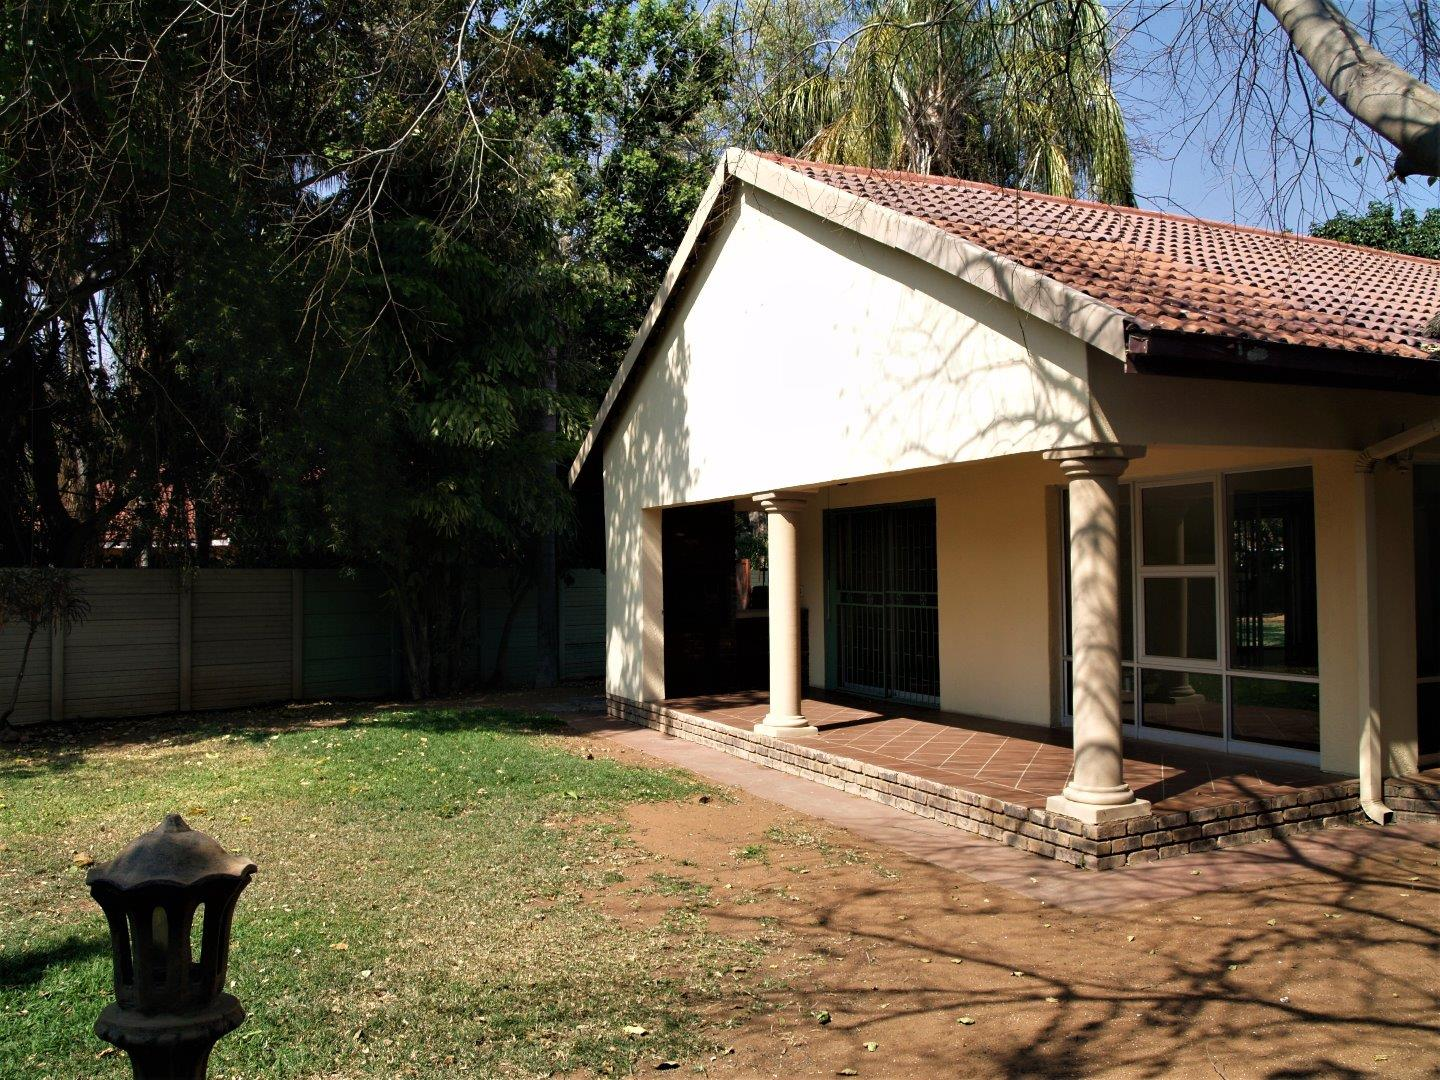 4 Bedroom  for Sale in Onverwacht, Lephalale - Limpopo